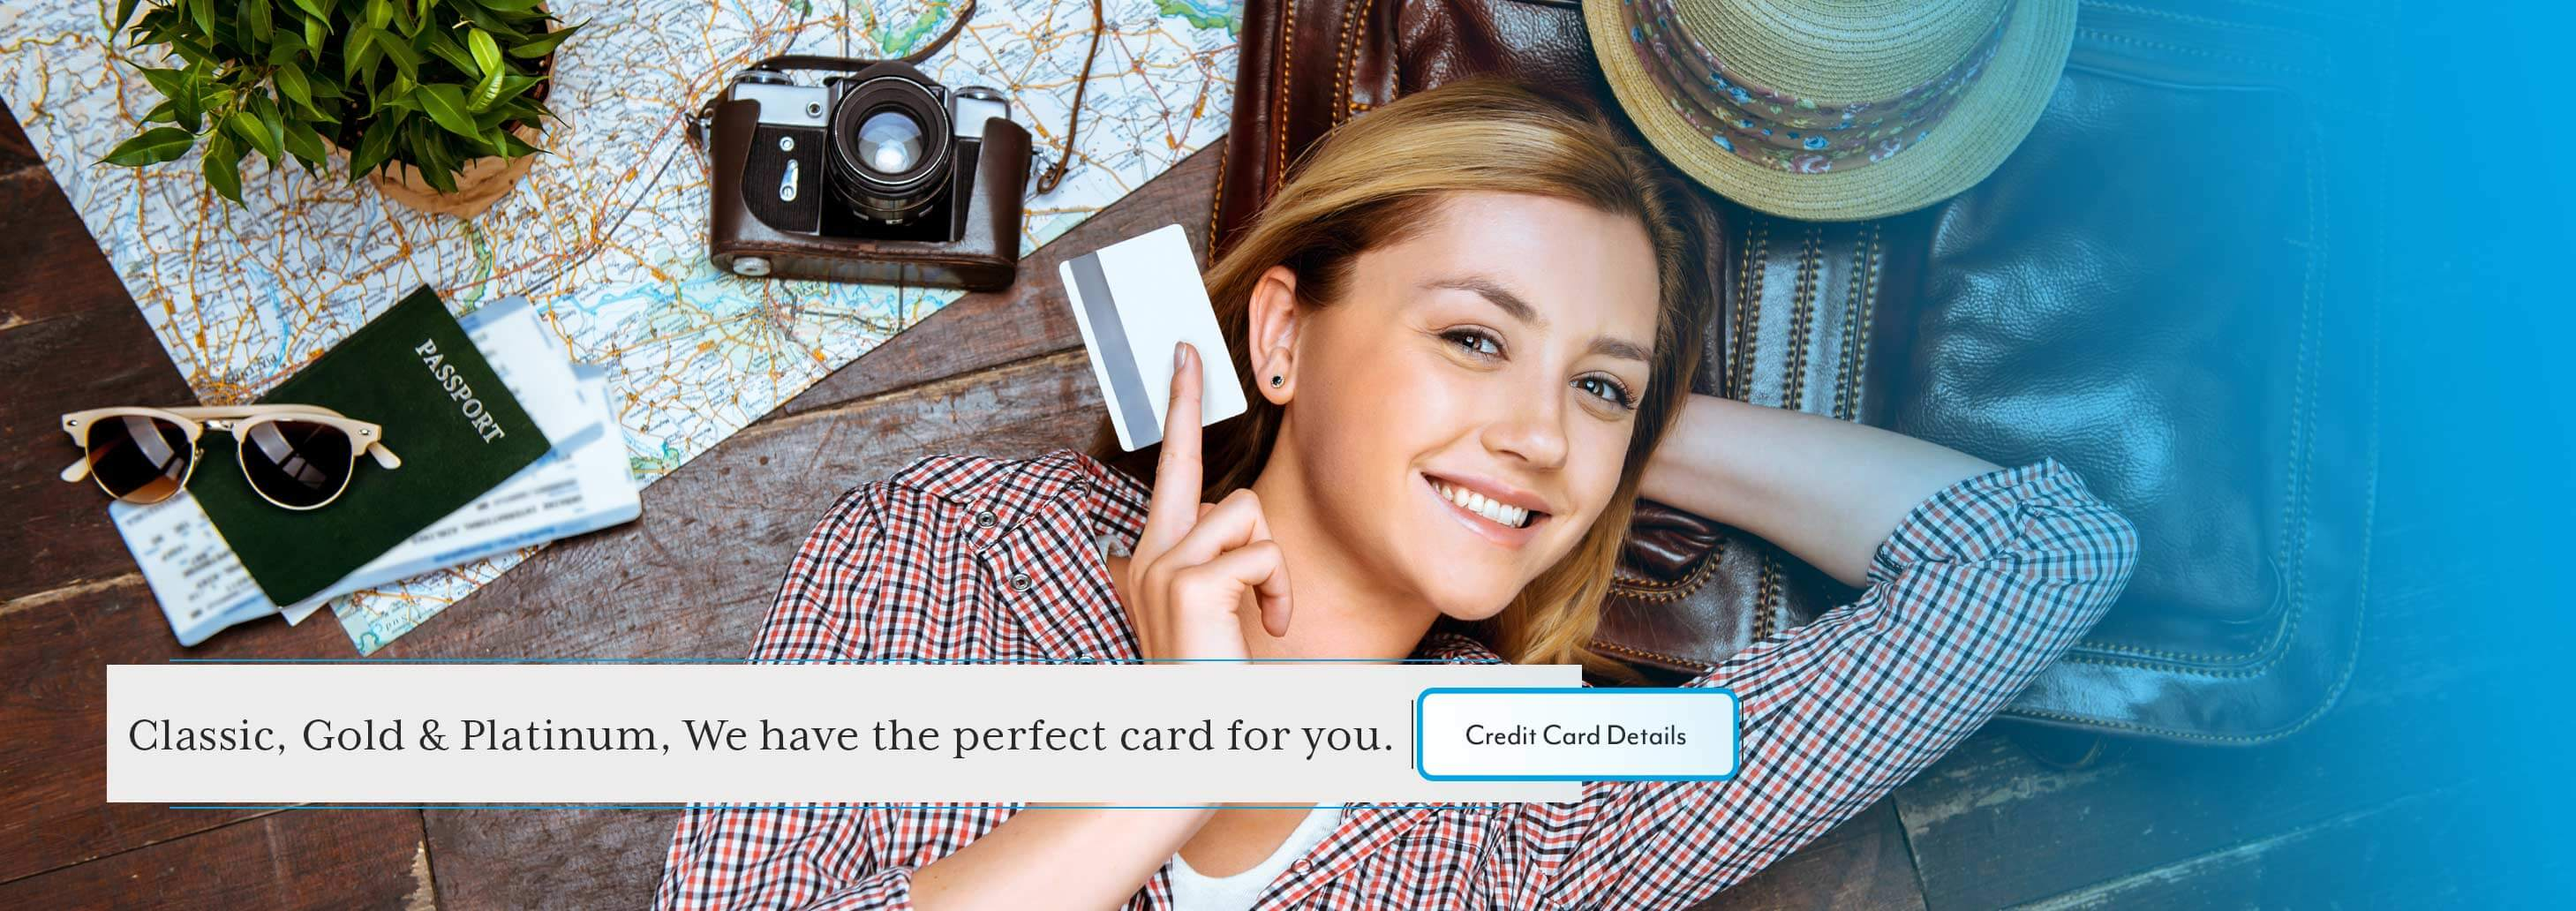 Classic, Gold & Platinum, We have  the perfect card for you. Credit Card Details